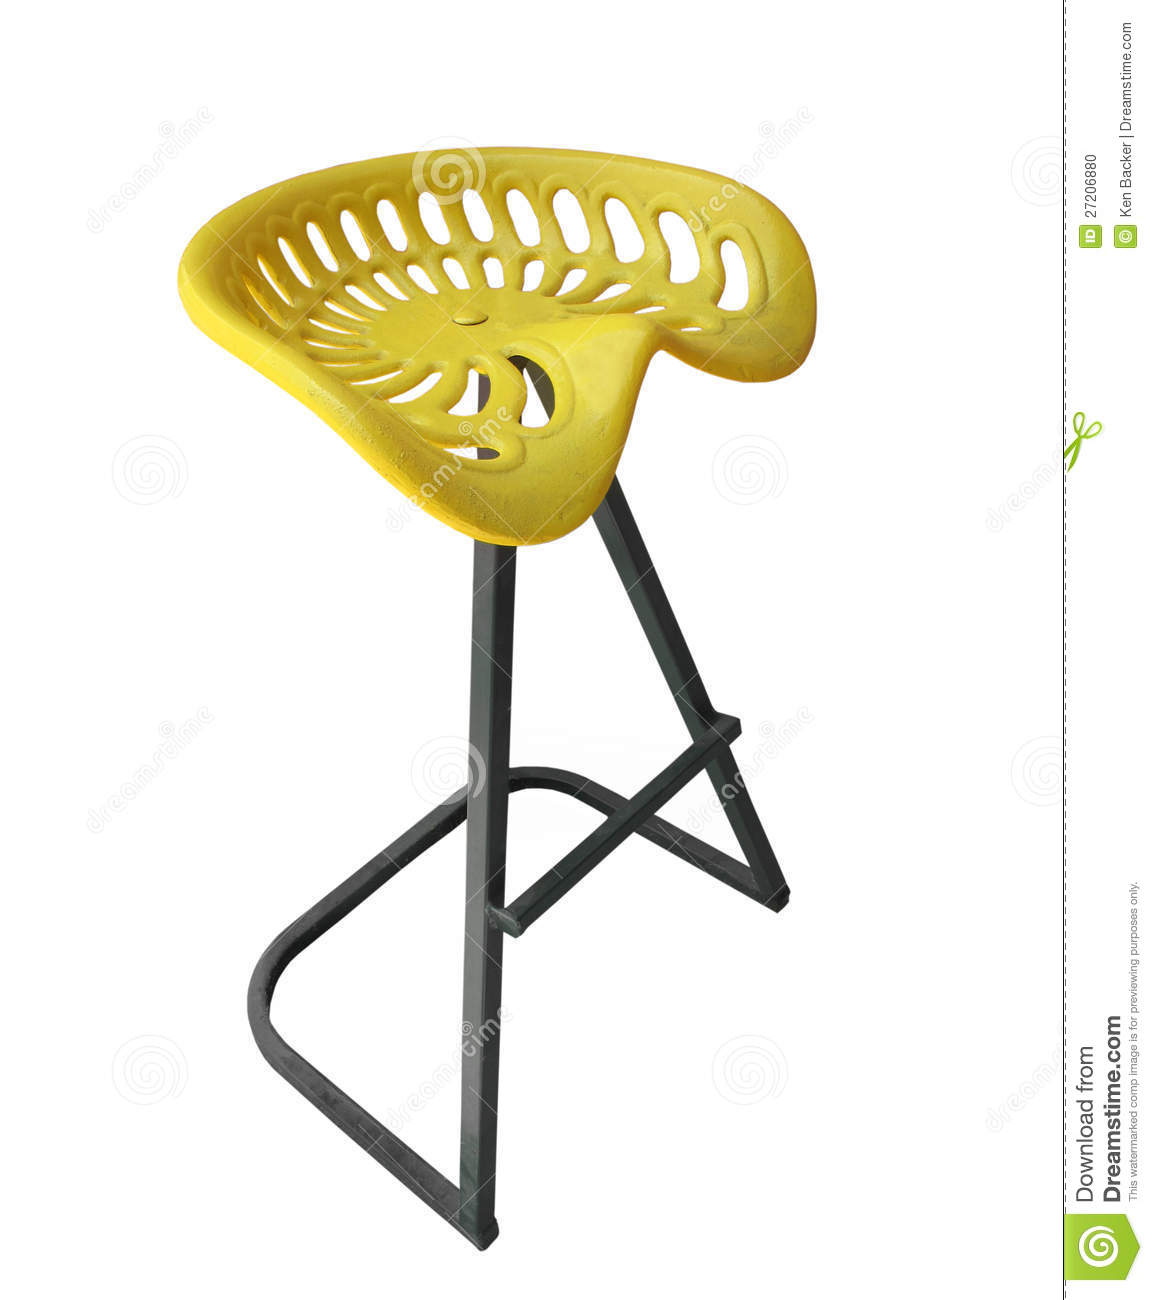 Old Time Tractor Seats : Stool made from an old tractor seat isolated stock photo